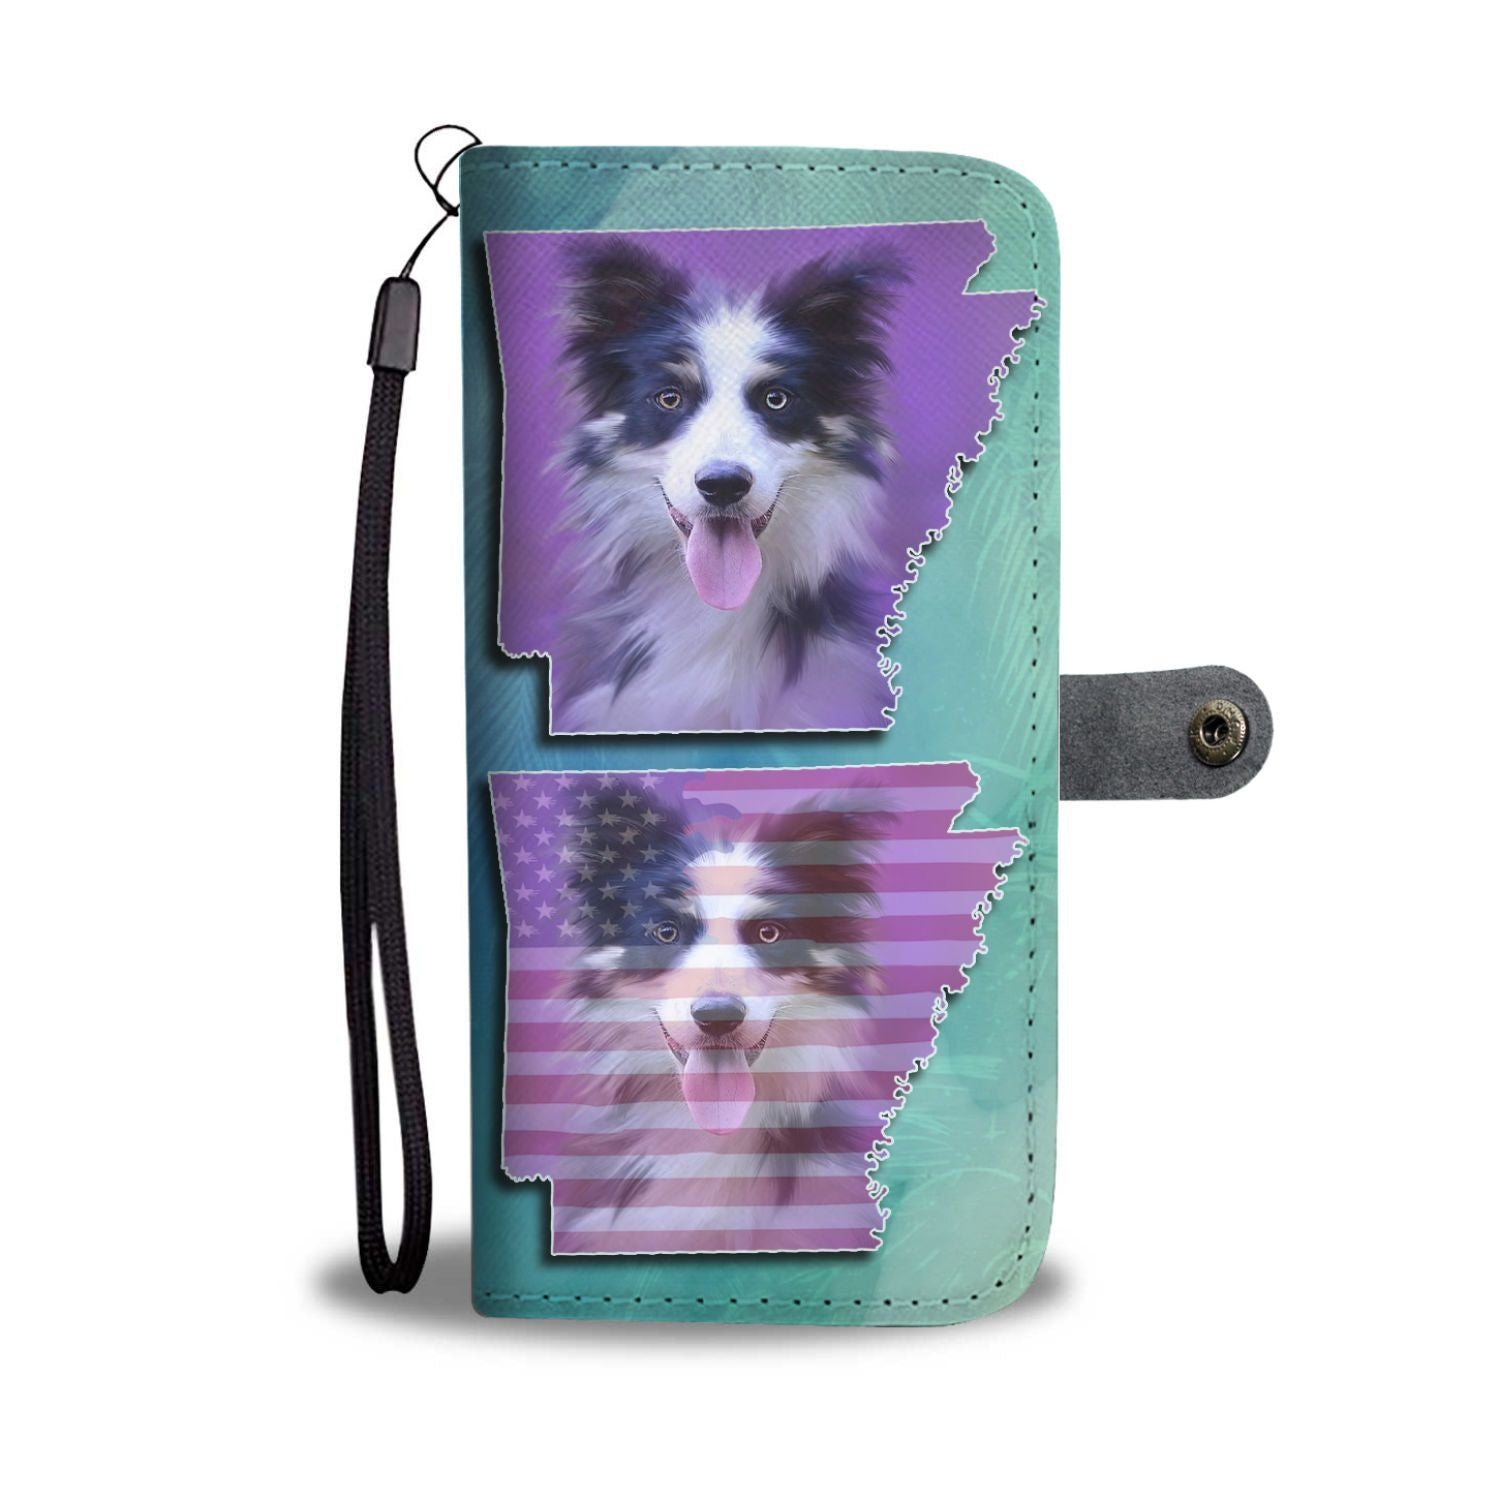 Border Collie Dog Art Print Wallet Case-Free Shipping-AR State - The Horse Barn